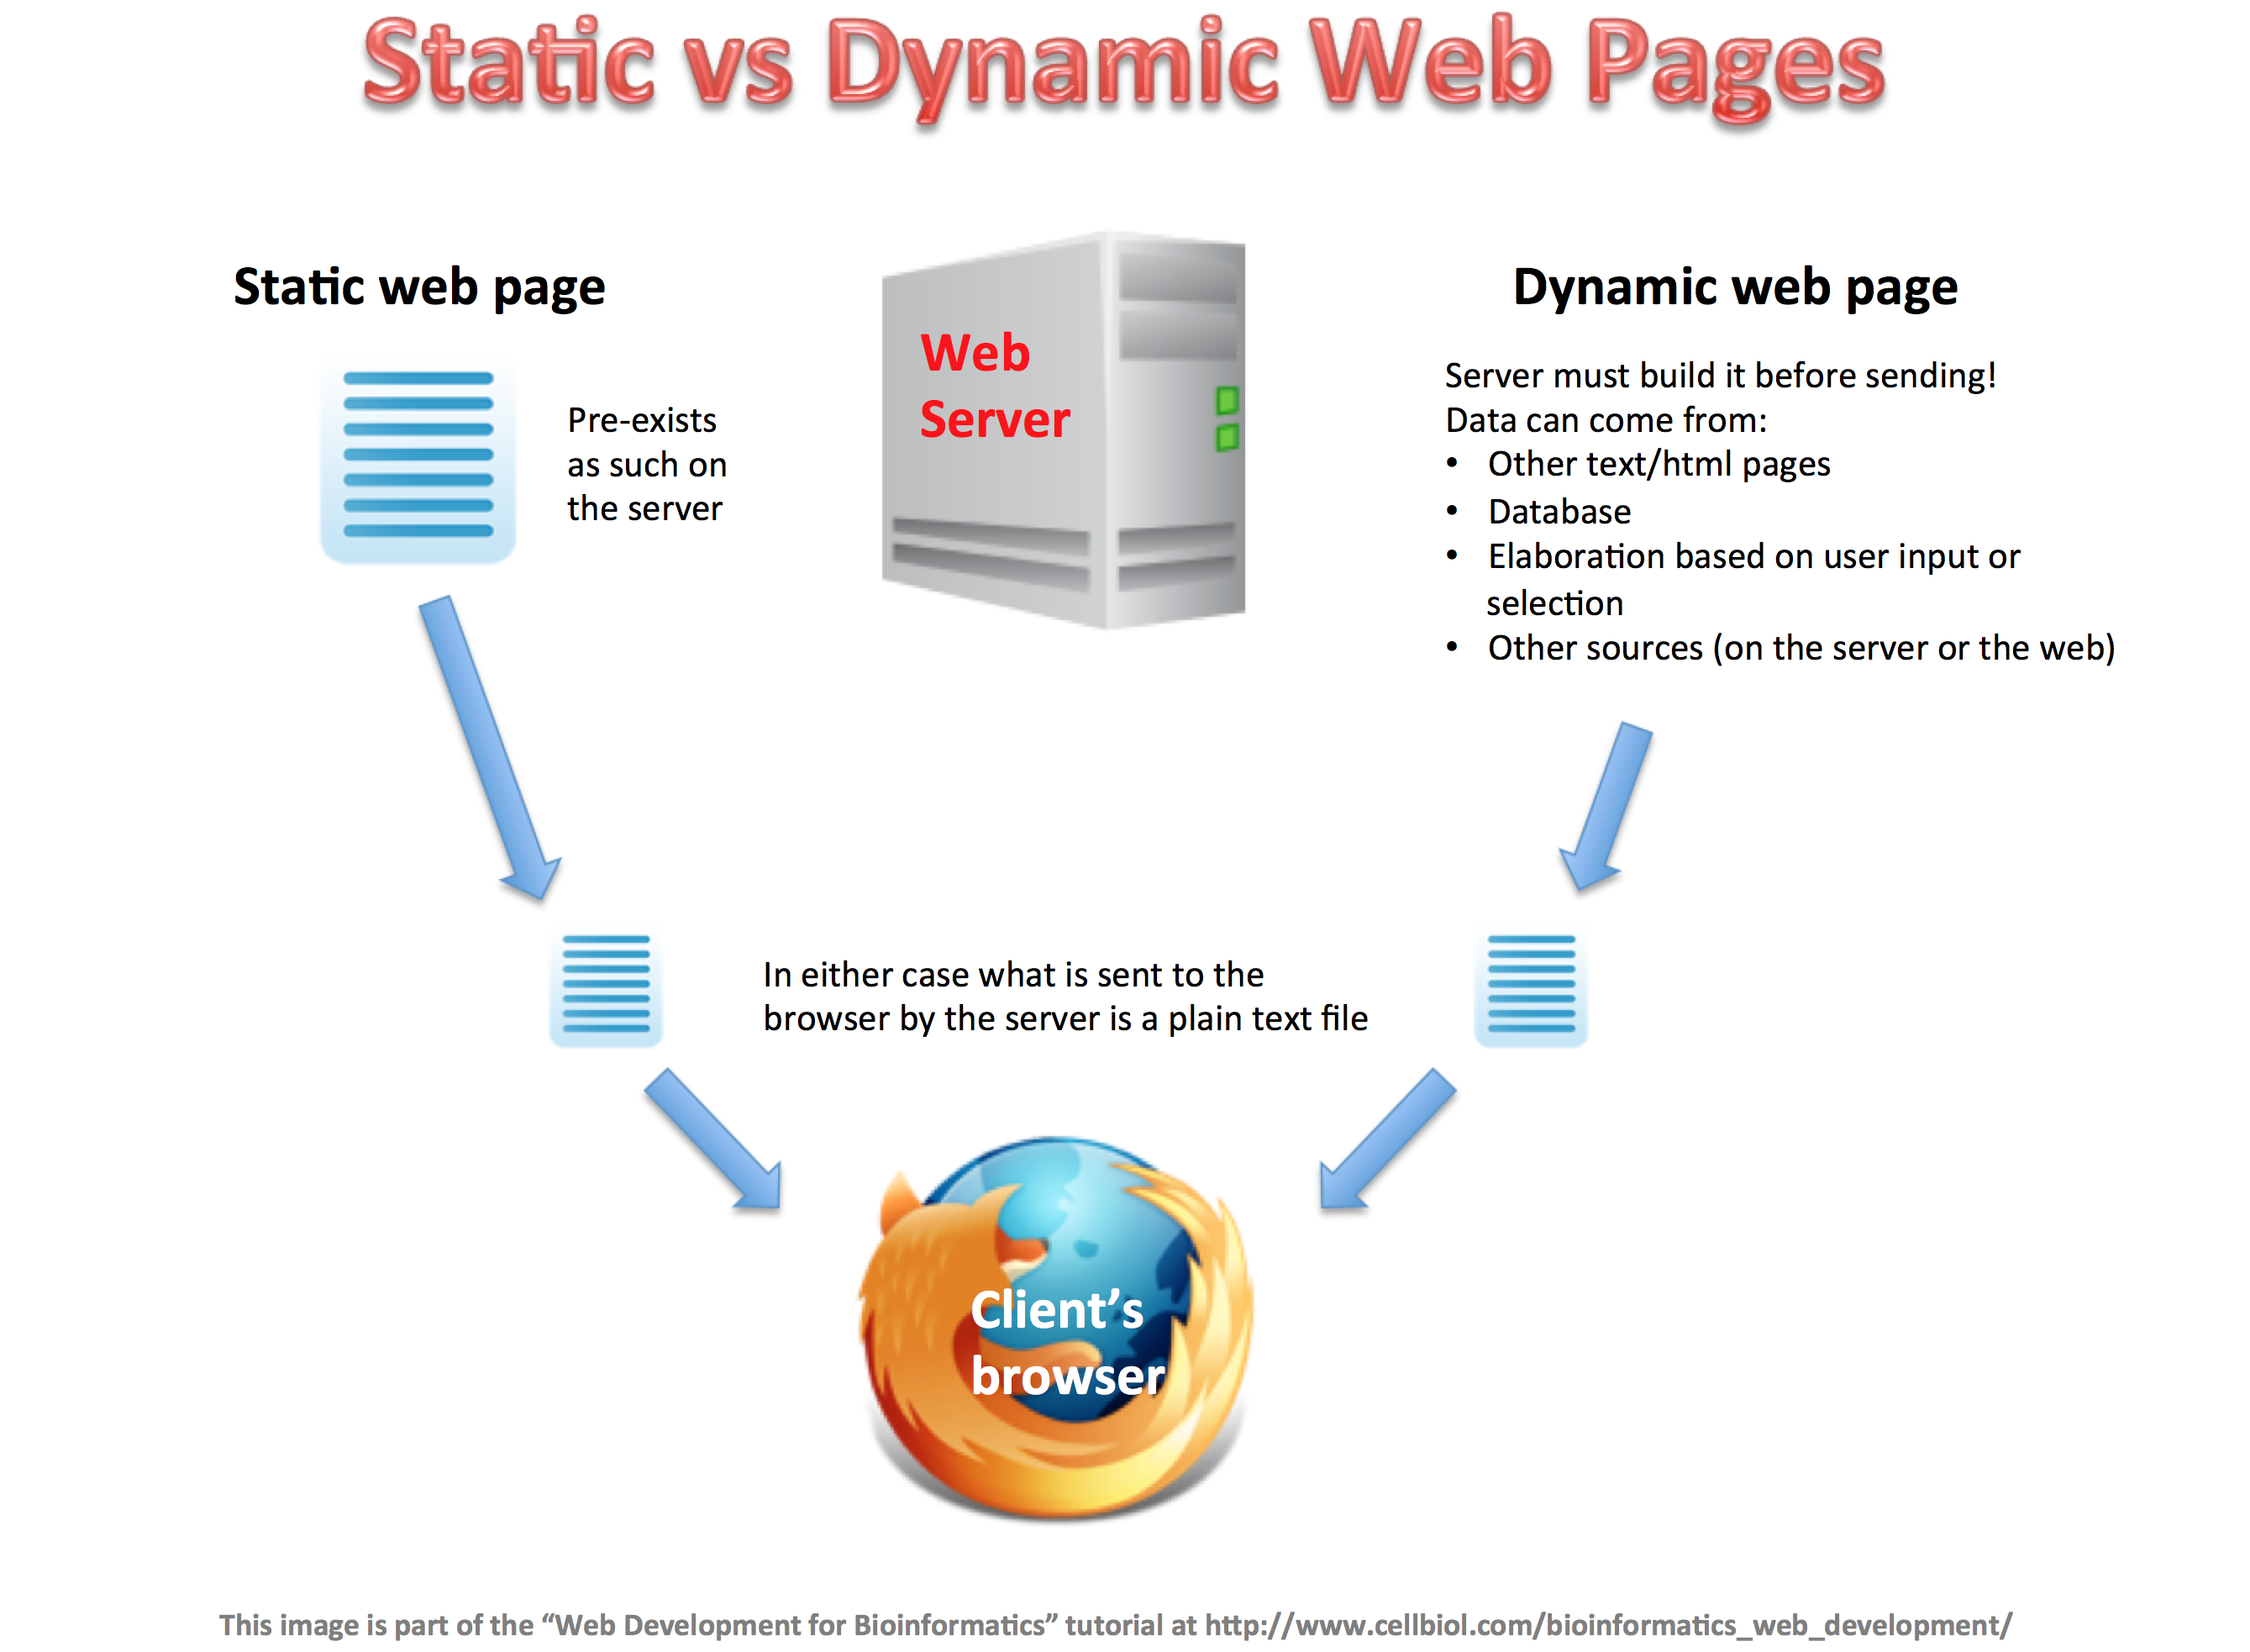 Static versus dynamic web pages